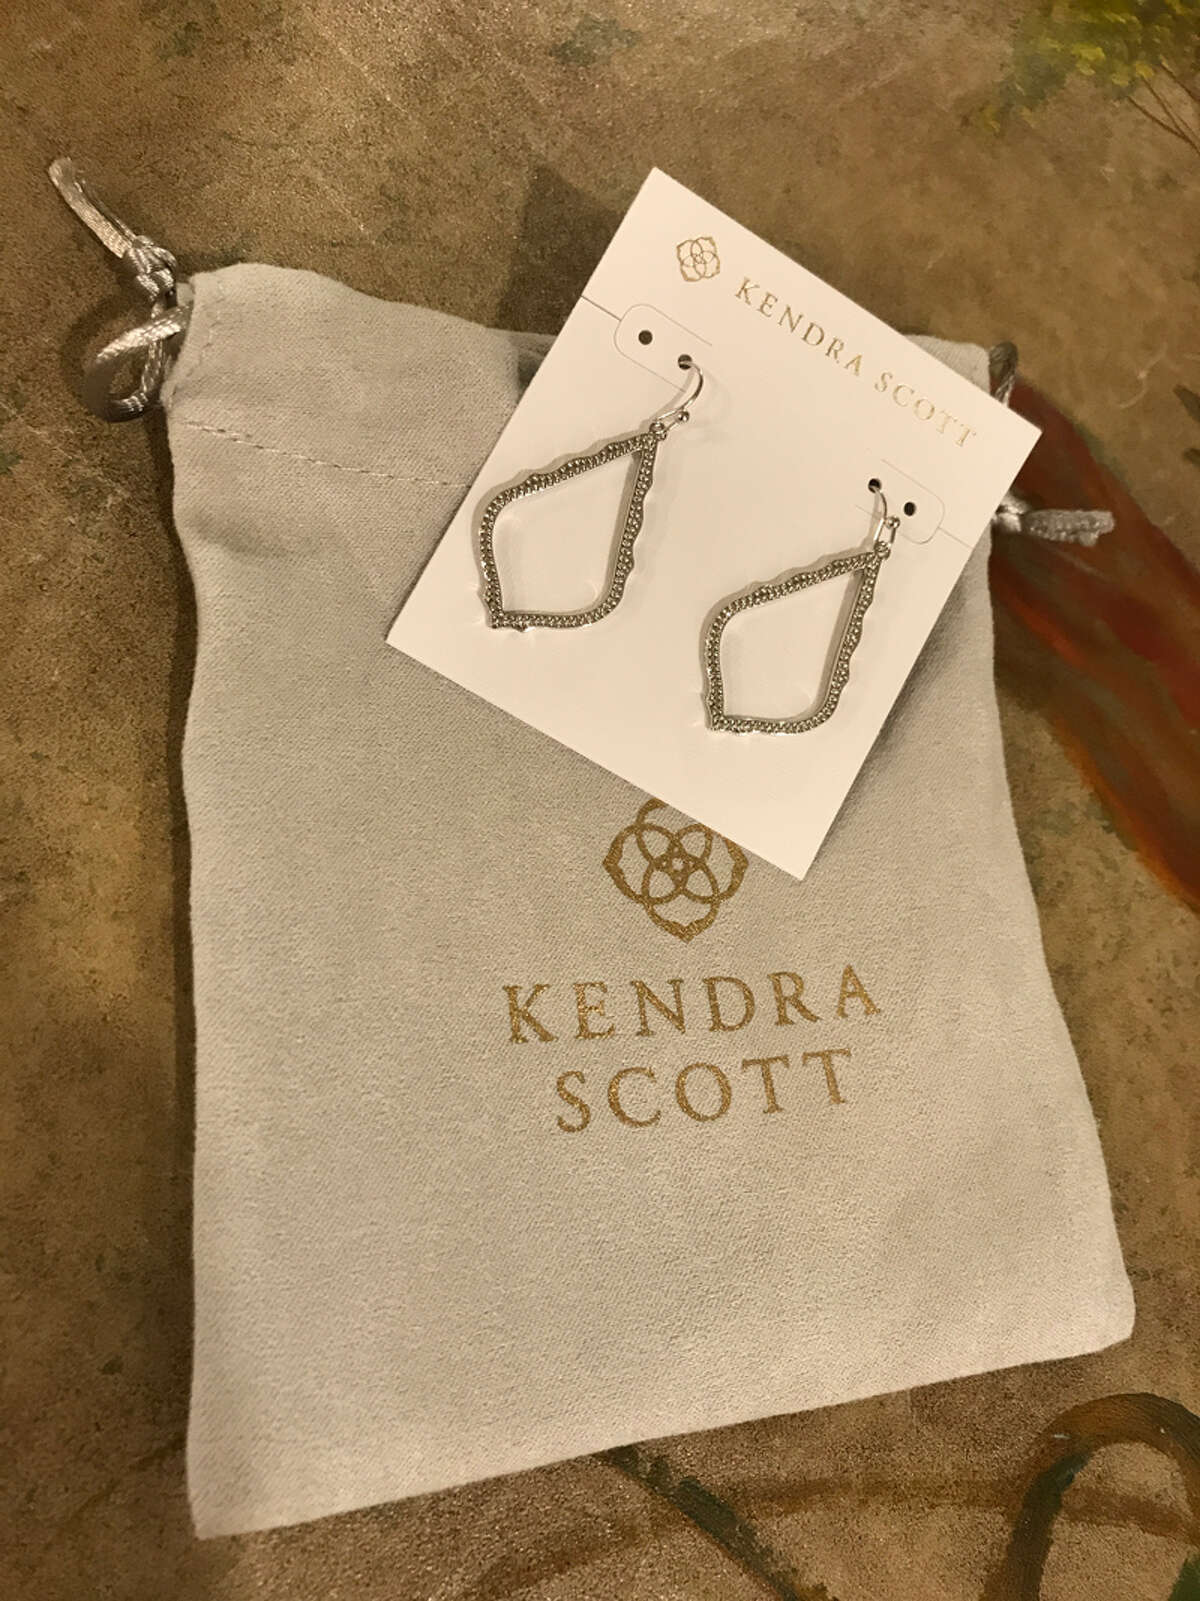 Alter's Gem Jewelry has a diamond and a piece of Kendra Scott jewelry for that! For the largest selection of Kendra Scott collectible earrings, necklaces, rings and more, visit Alter's. You can't go wrong with a simple of pair of silver earrings that your beloved can wear every day for $50.